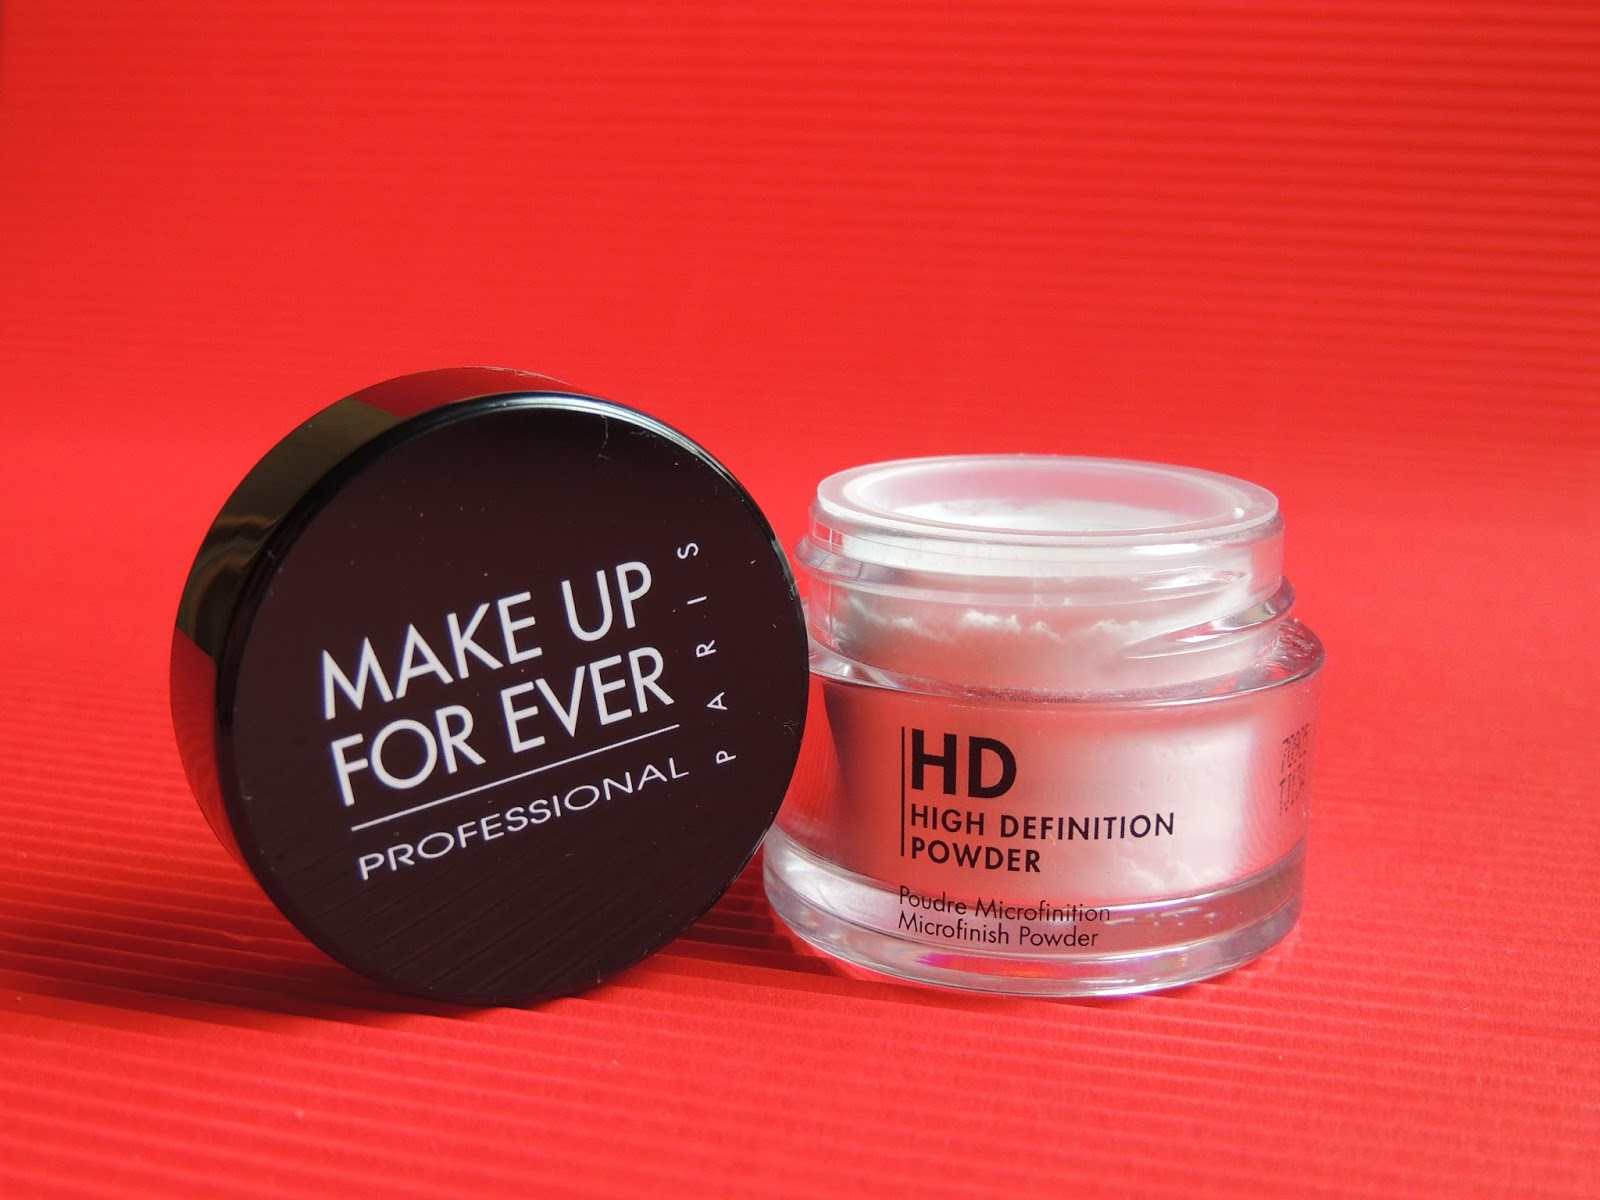 High Definition Powder.- Make up Forever